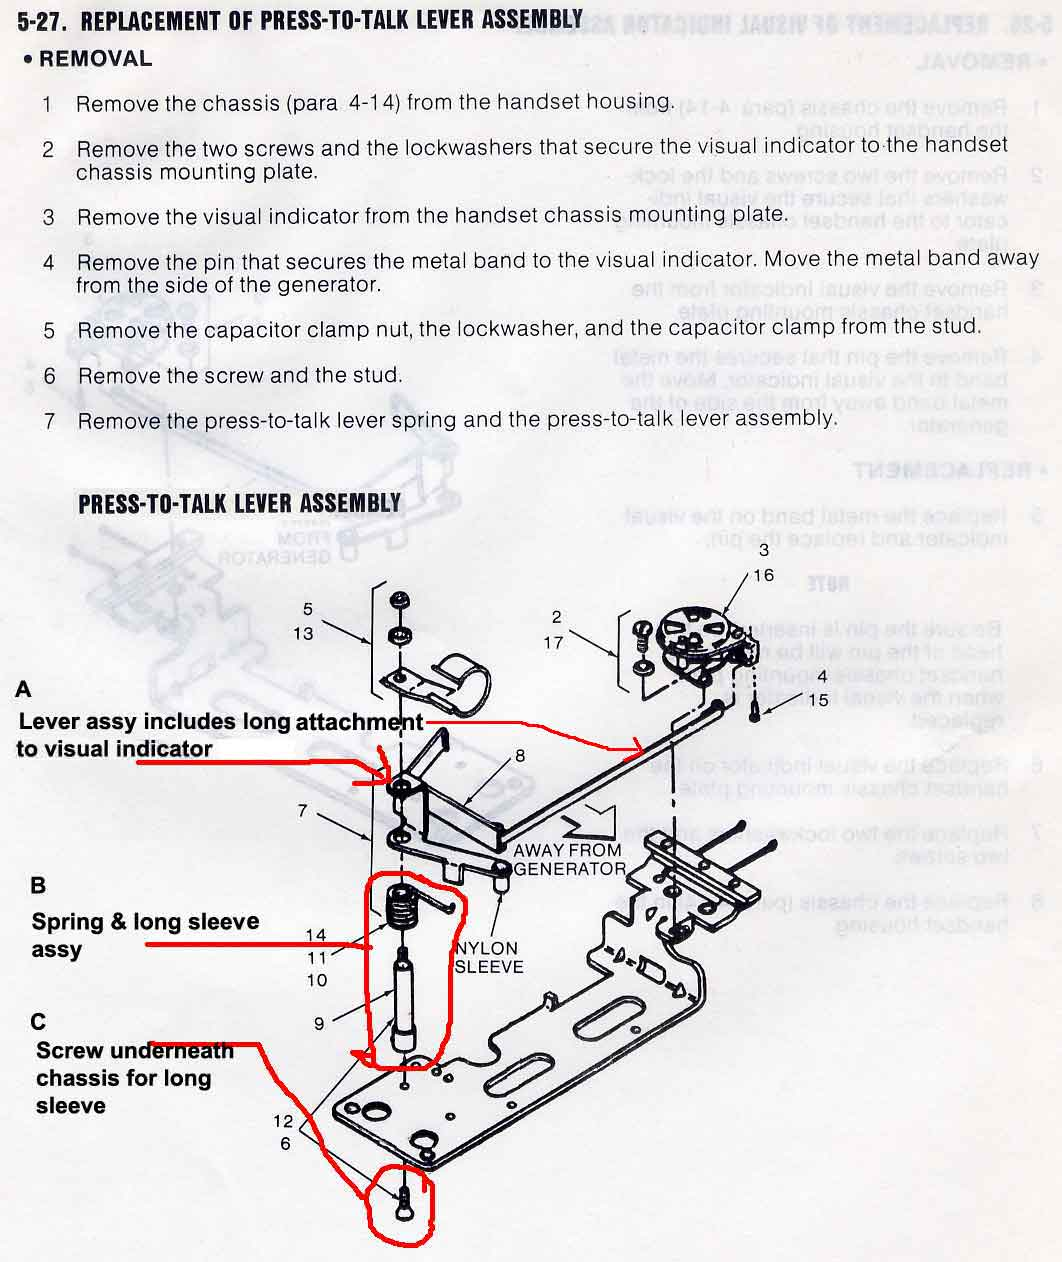 Pust to Talk lever assembly instructions